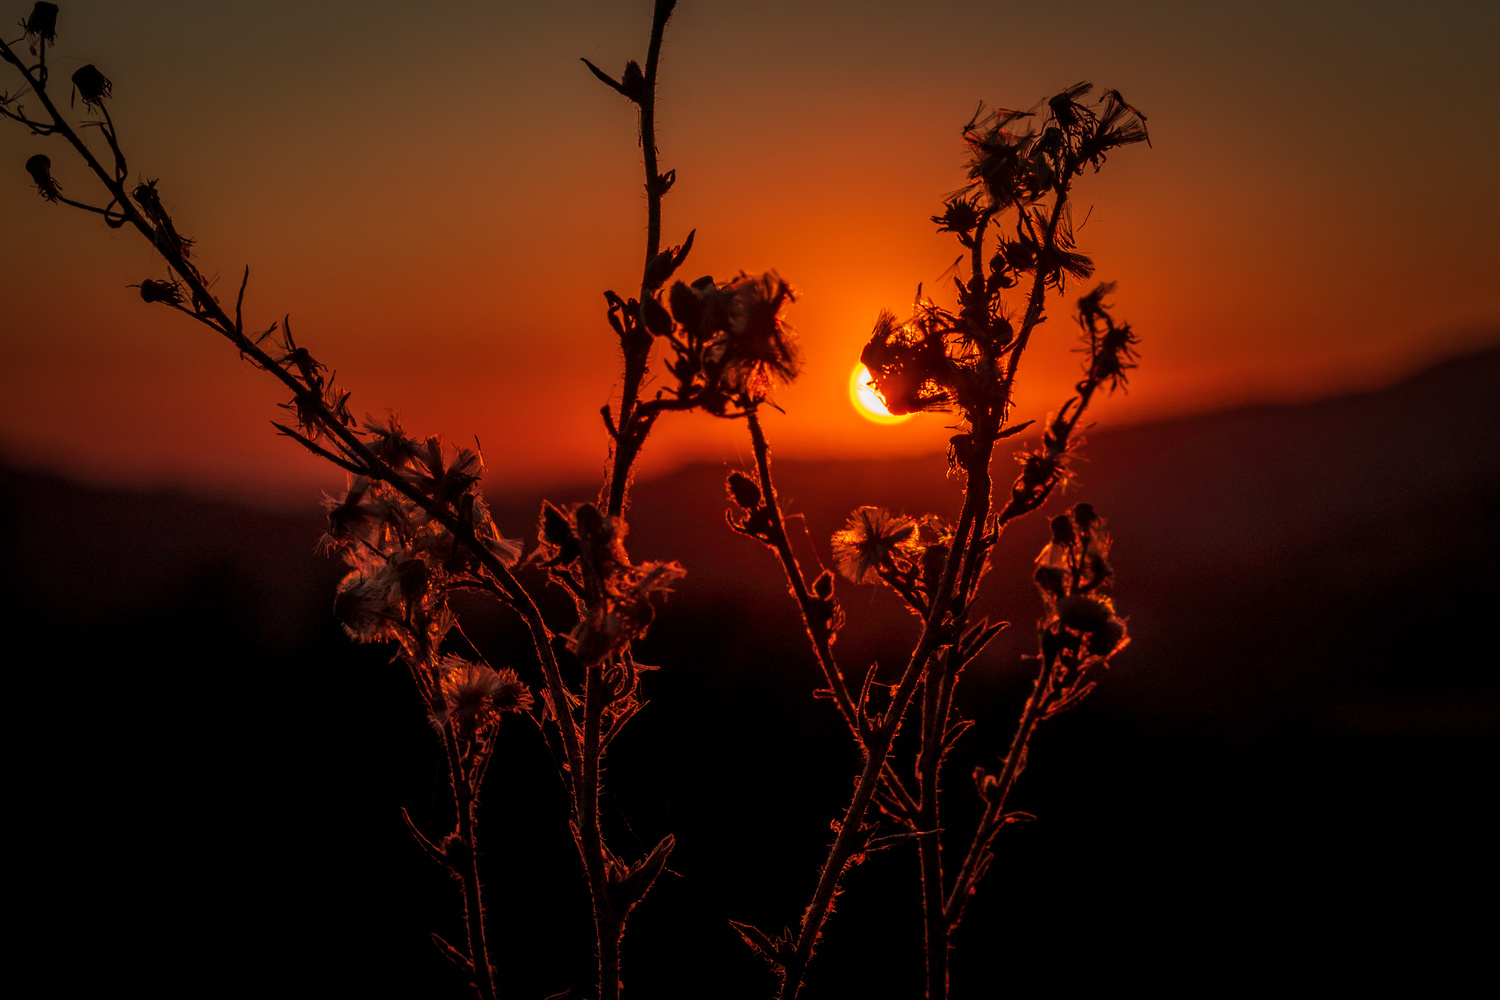 Weeds in the sunset by Jacob Pelley